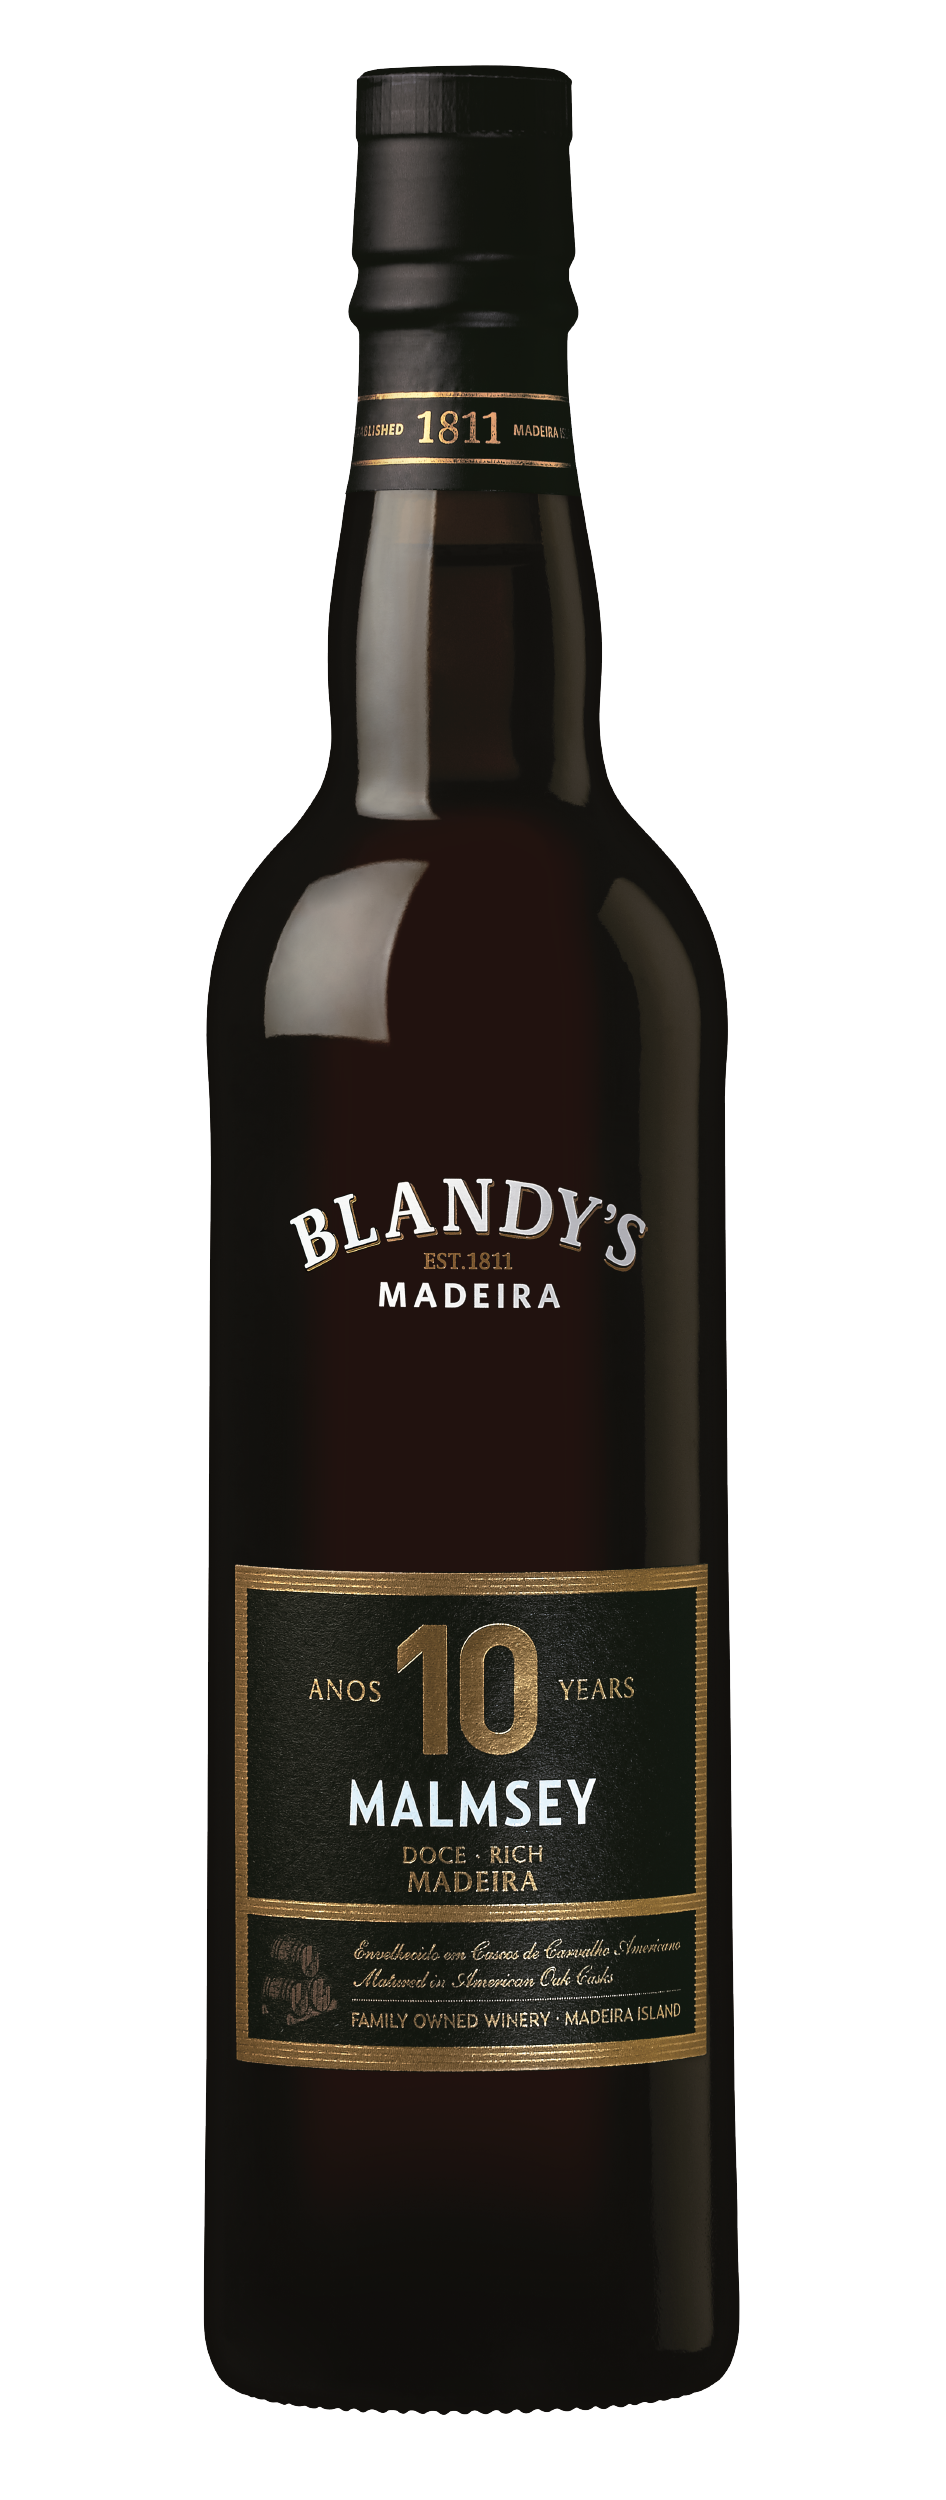 Product Image for BLANDY'S MALMSEY 10 YEAR OLD